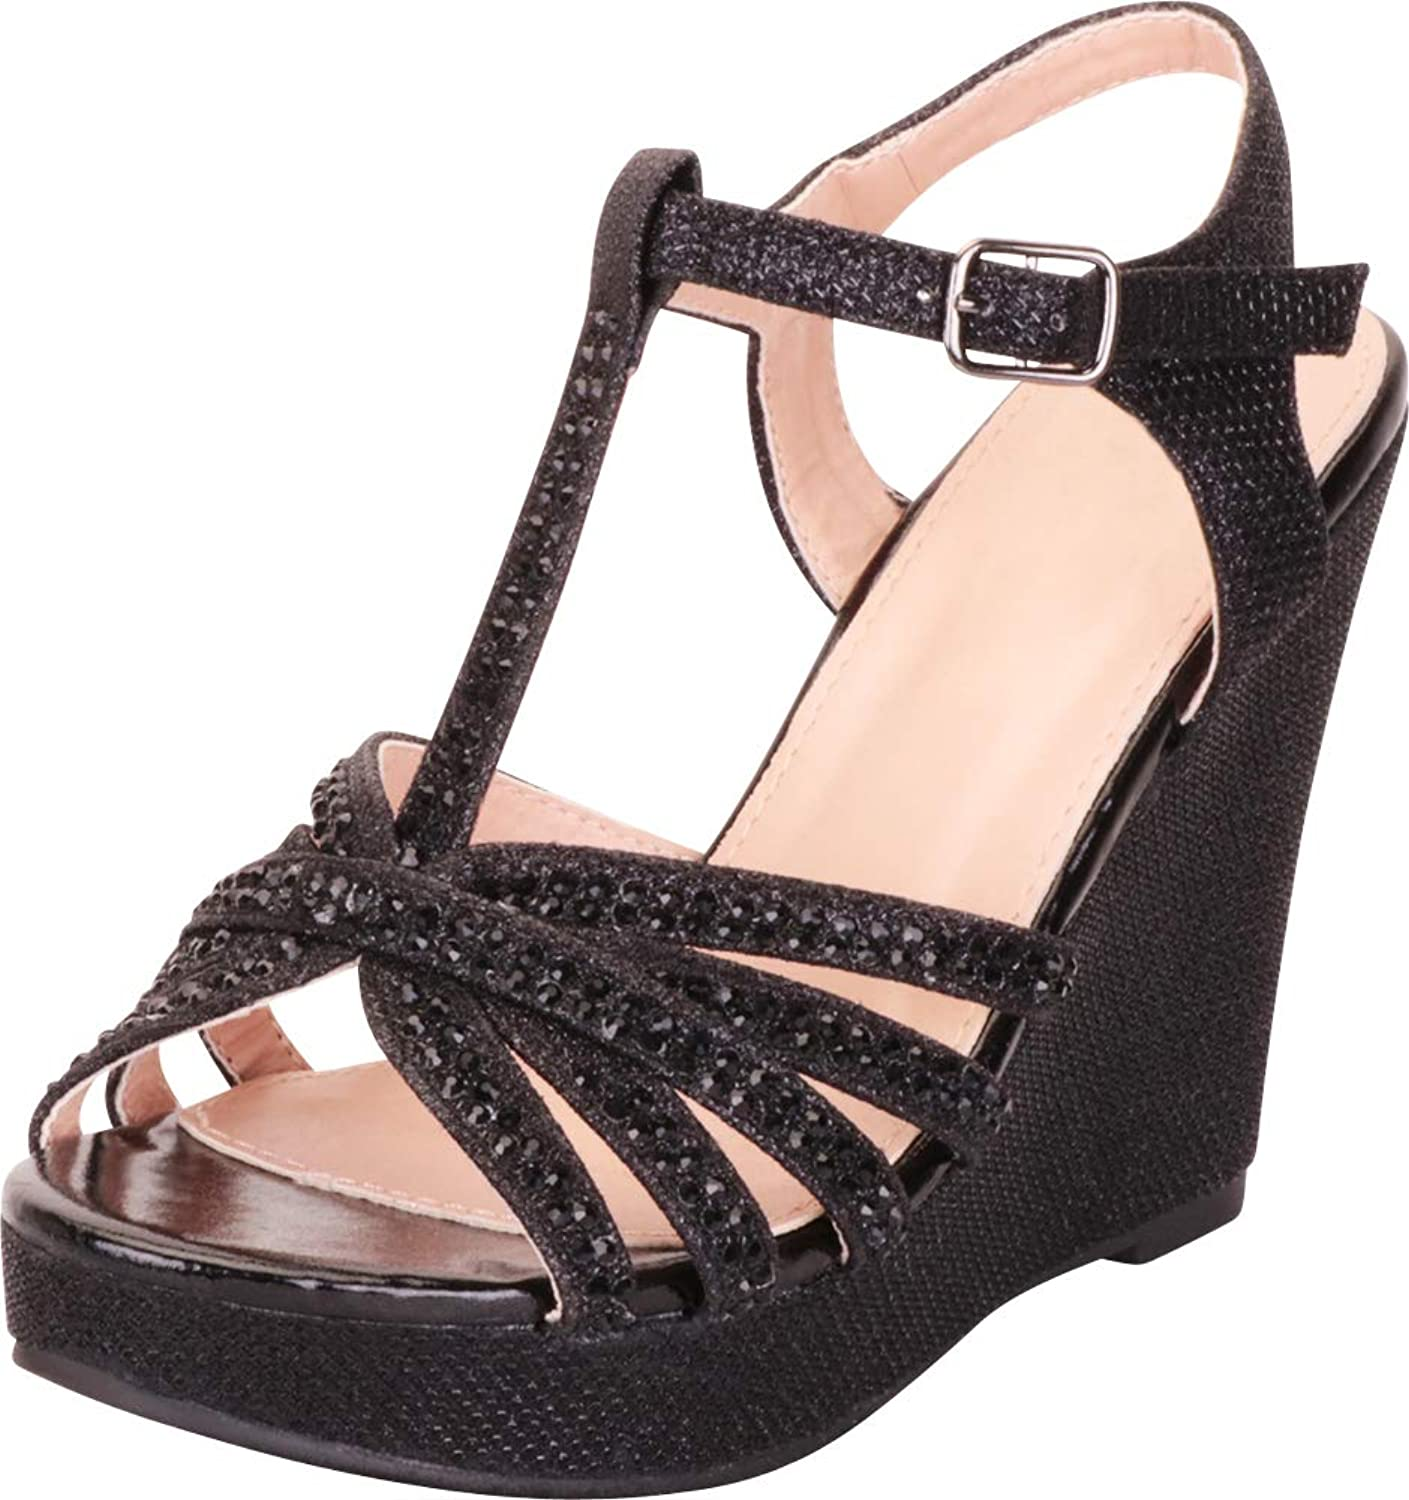 Cambridge Select Woherrar Open Toe T T T - Strap Crystal Rhinestone Chunky Platform Wedge Dress Sandal  letar efter försäljningsagent